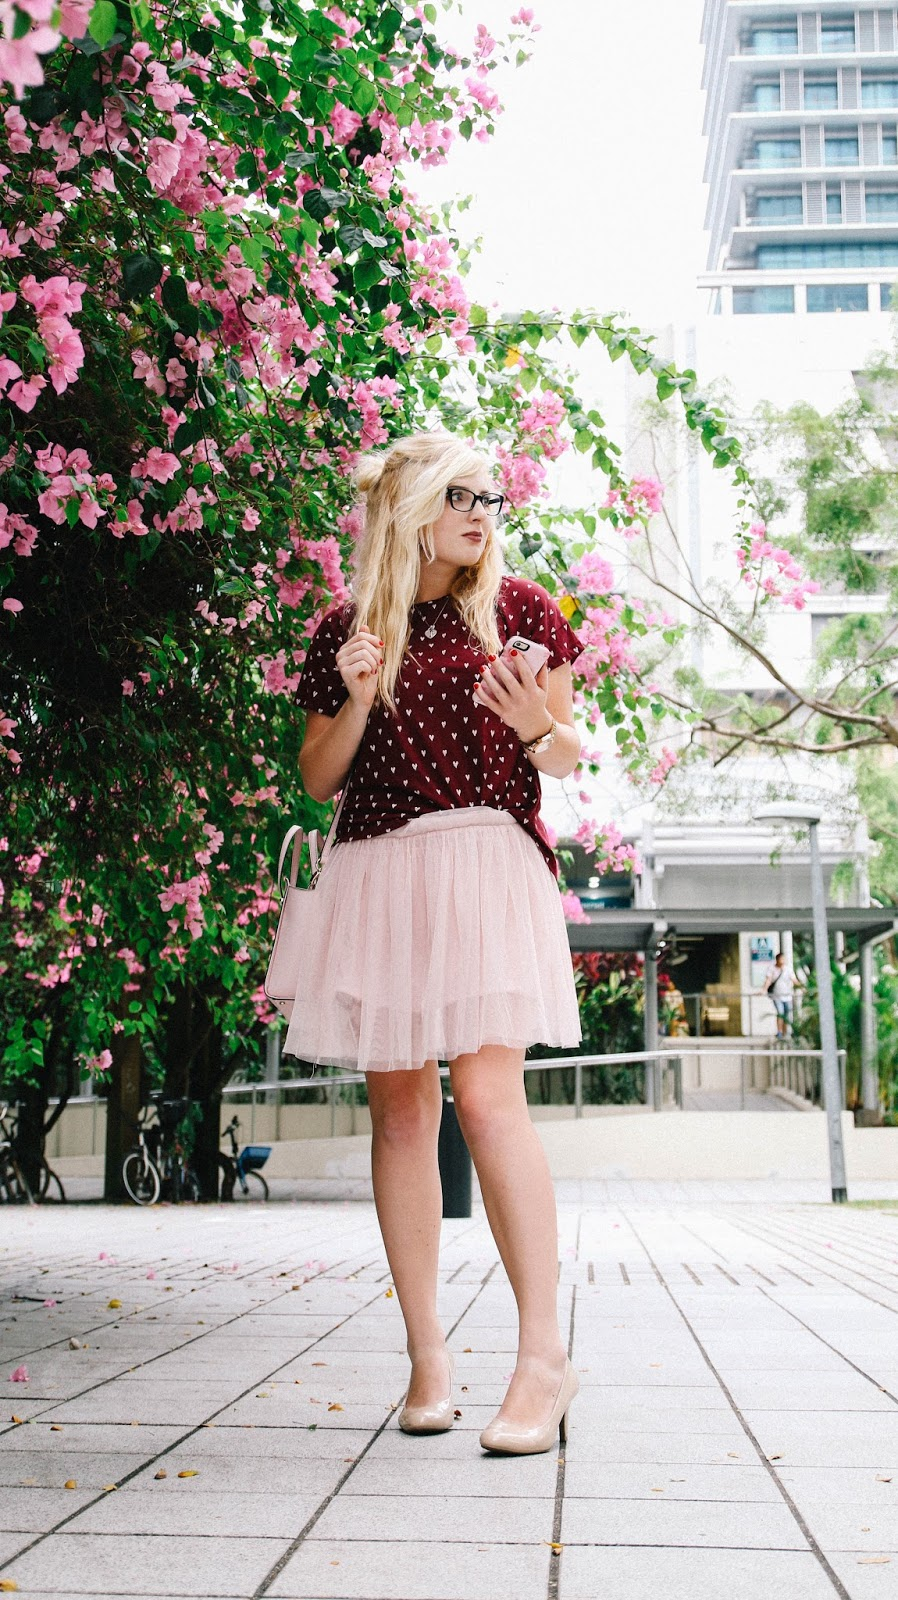 Heart printed top and pink tulle for Valentines Day by GlobalFashionGal (Brianna Degaston)